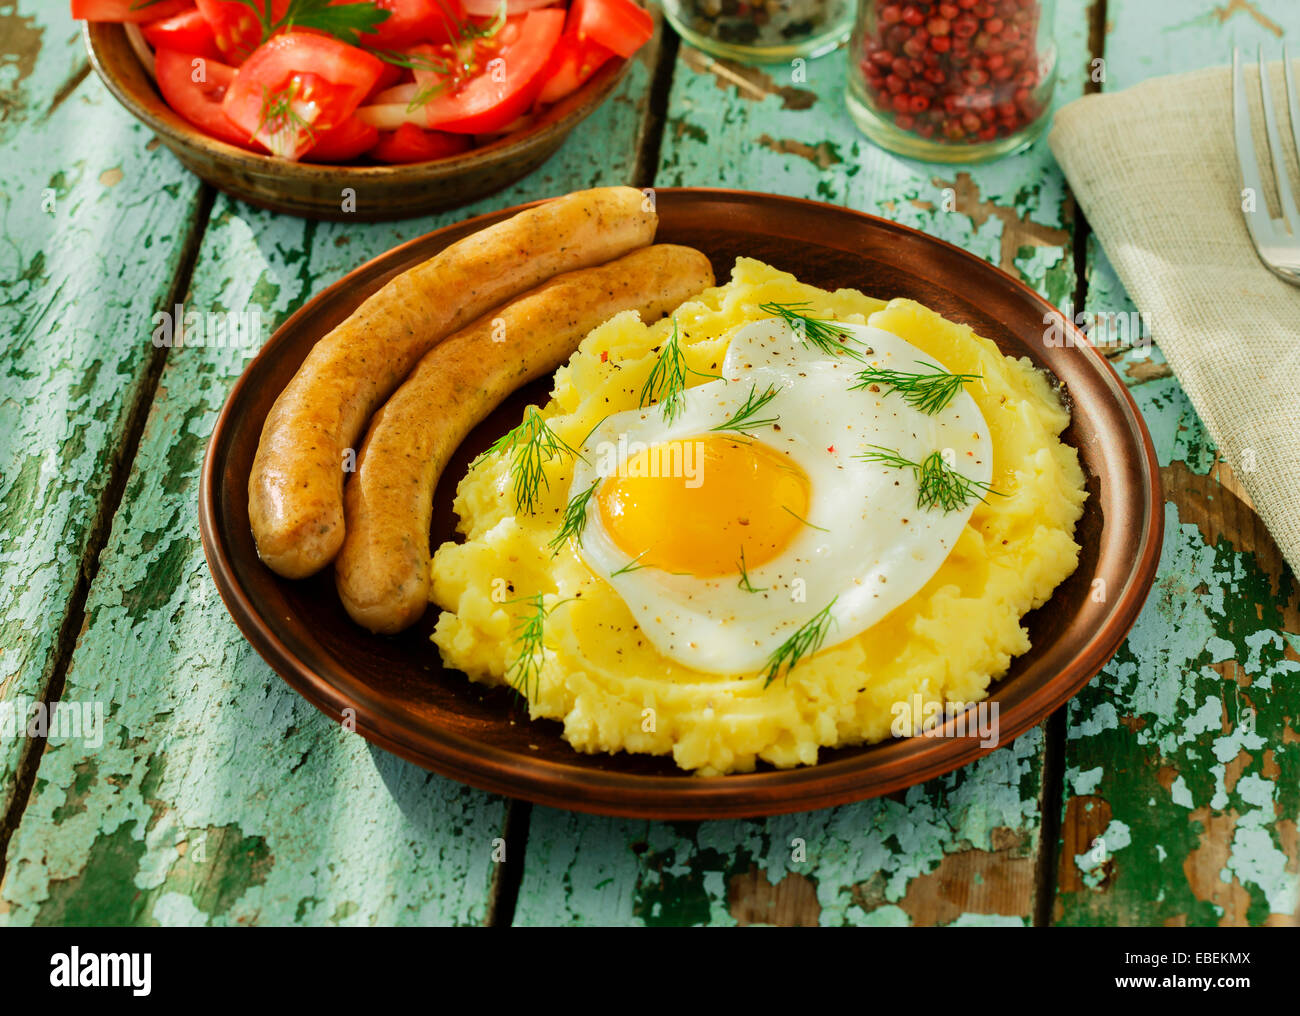 mashed potatoes with fried egg and sausage - Stock Image